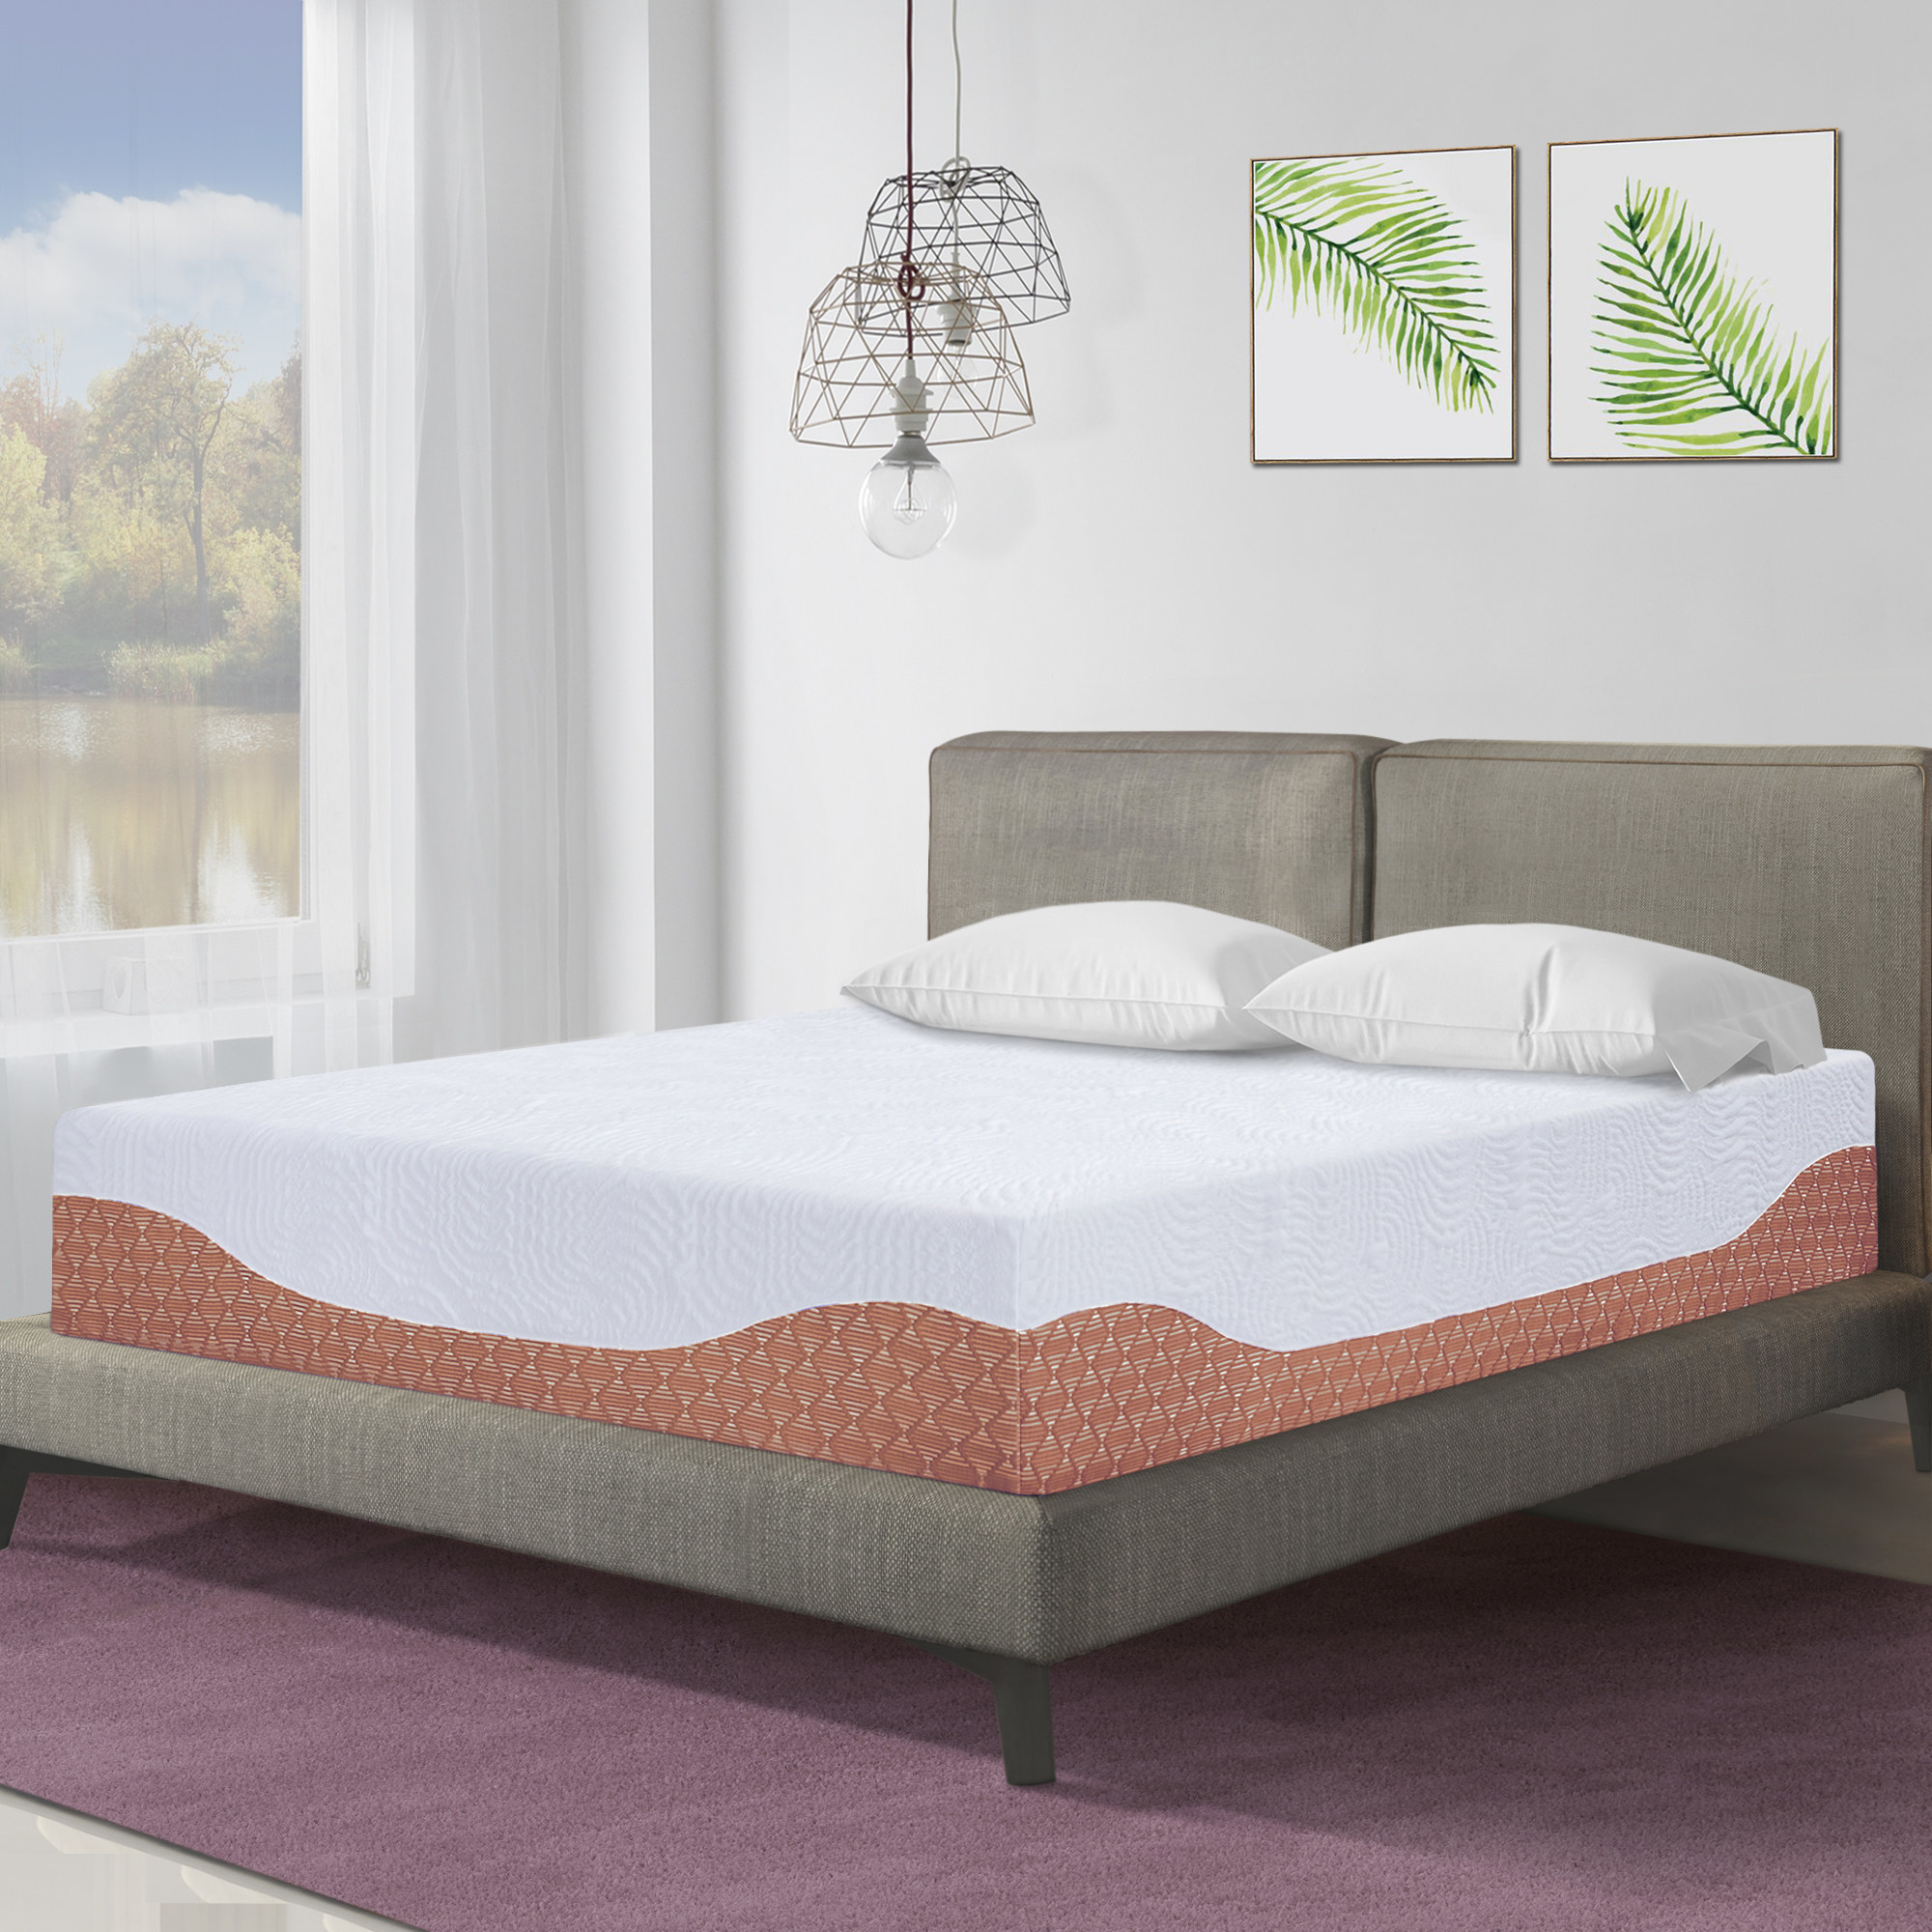 white and brown memory foam mattress on a gray frame and headboard